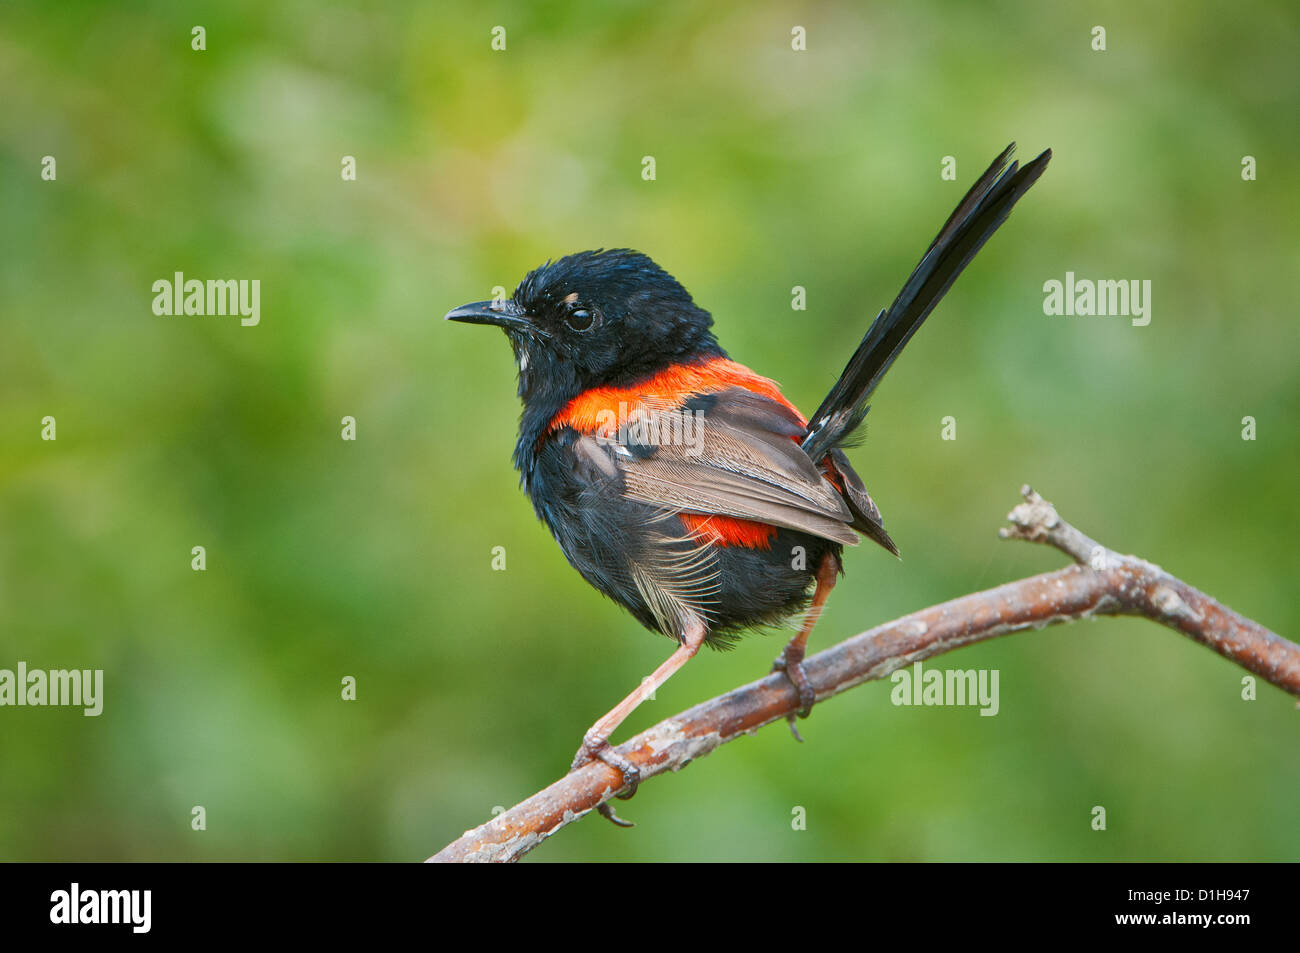 Red-backed Fairywren sitting on a twig. Stock Photo